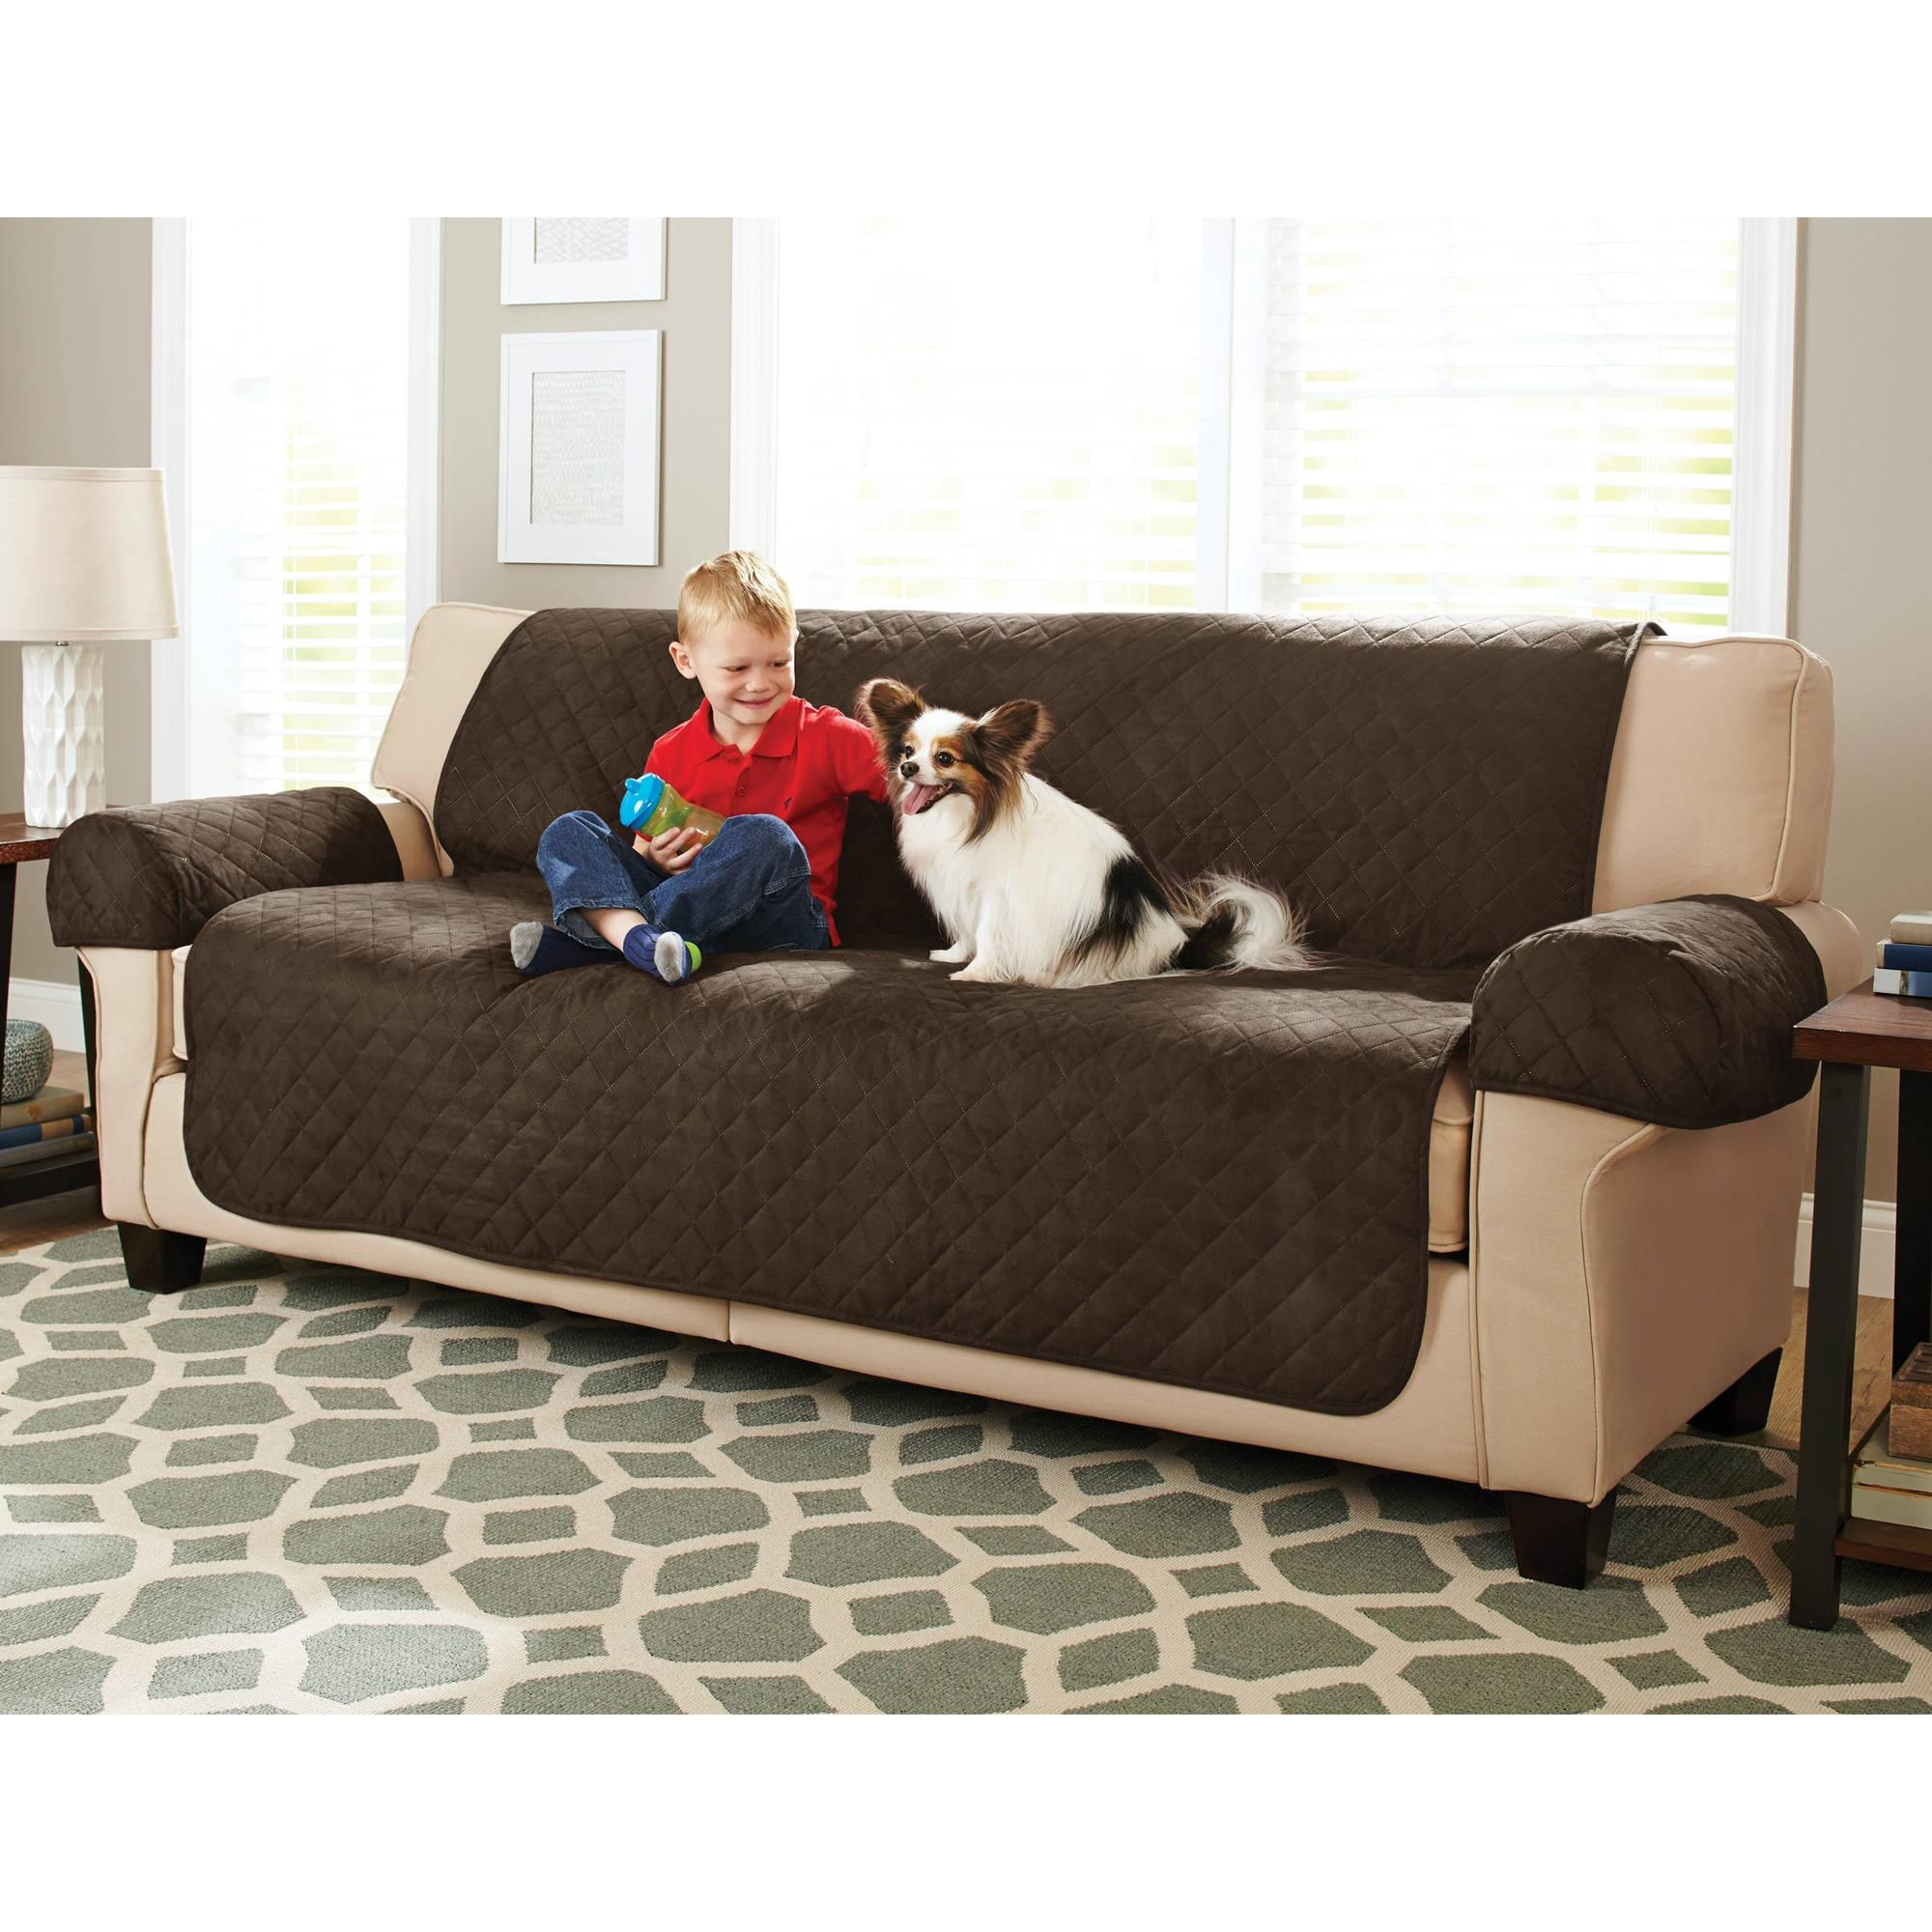 Better Homes And Gardens Waterproof Non Slip Faux Suede Pet With Sofa With Washable Covers (Image 1 of 20)